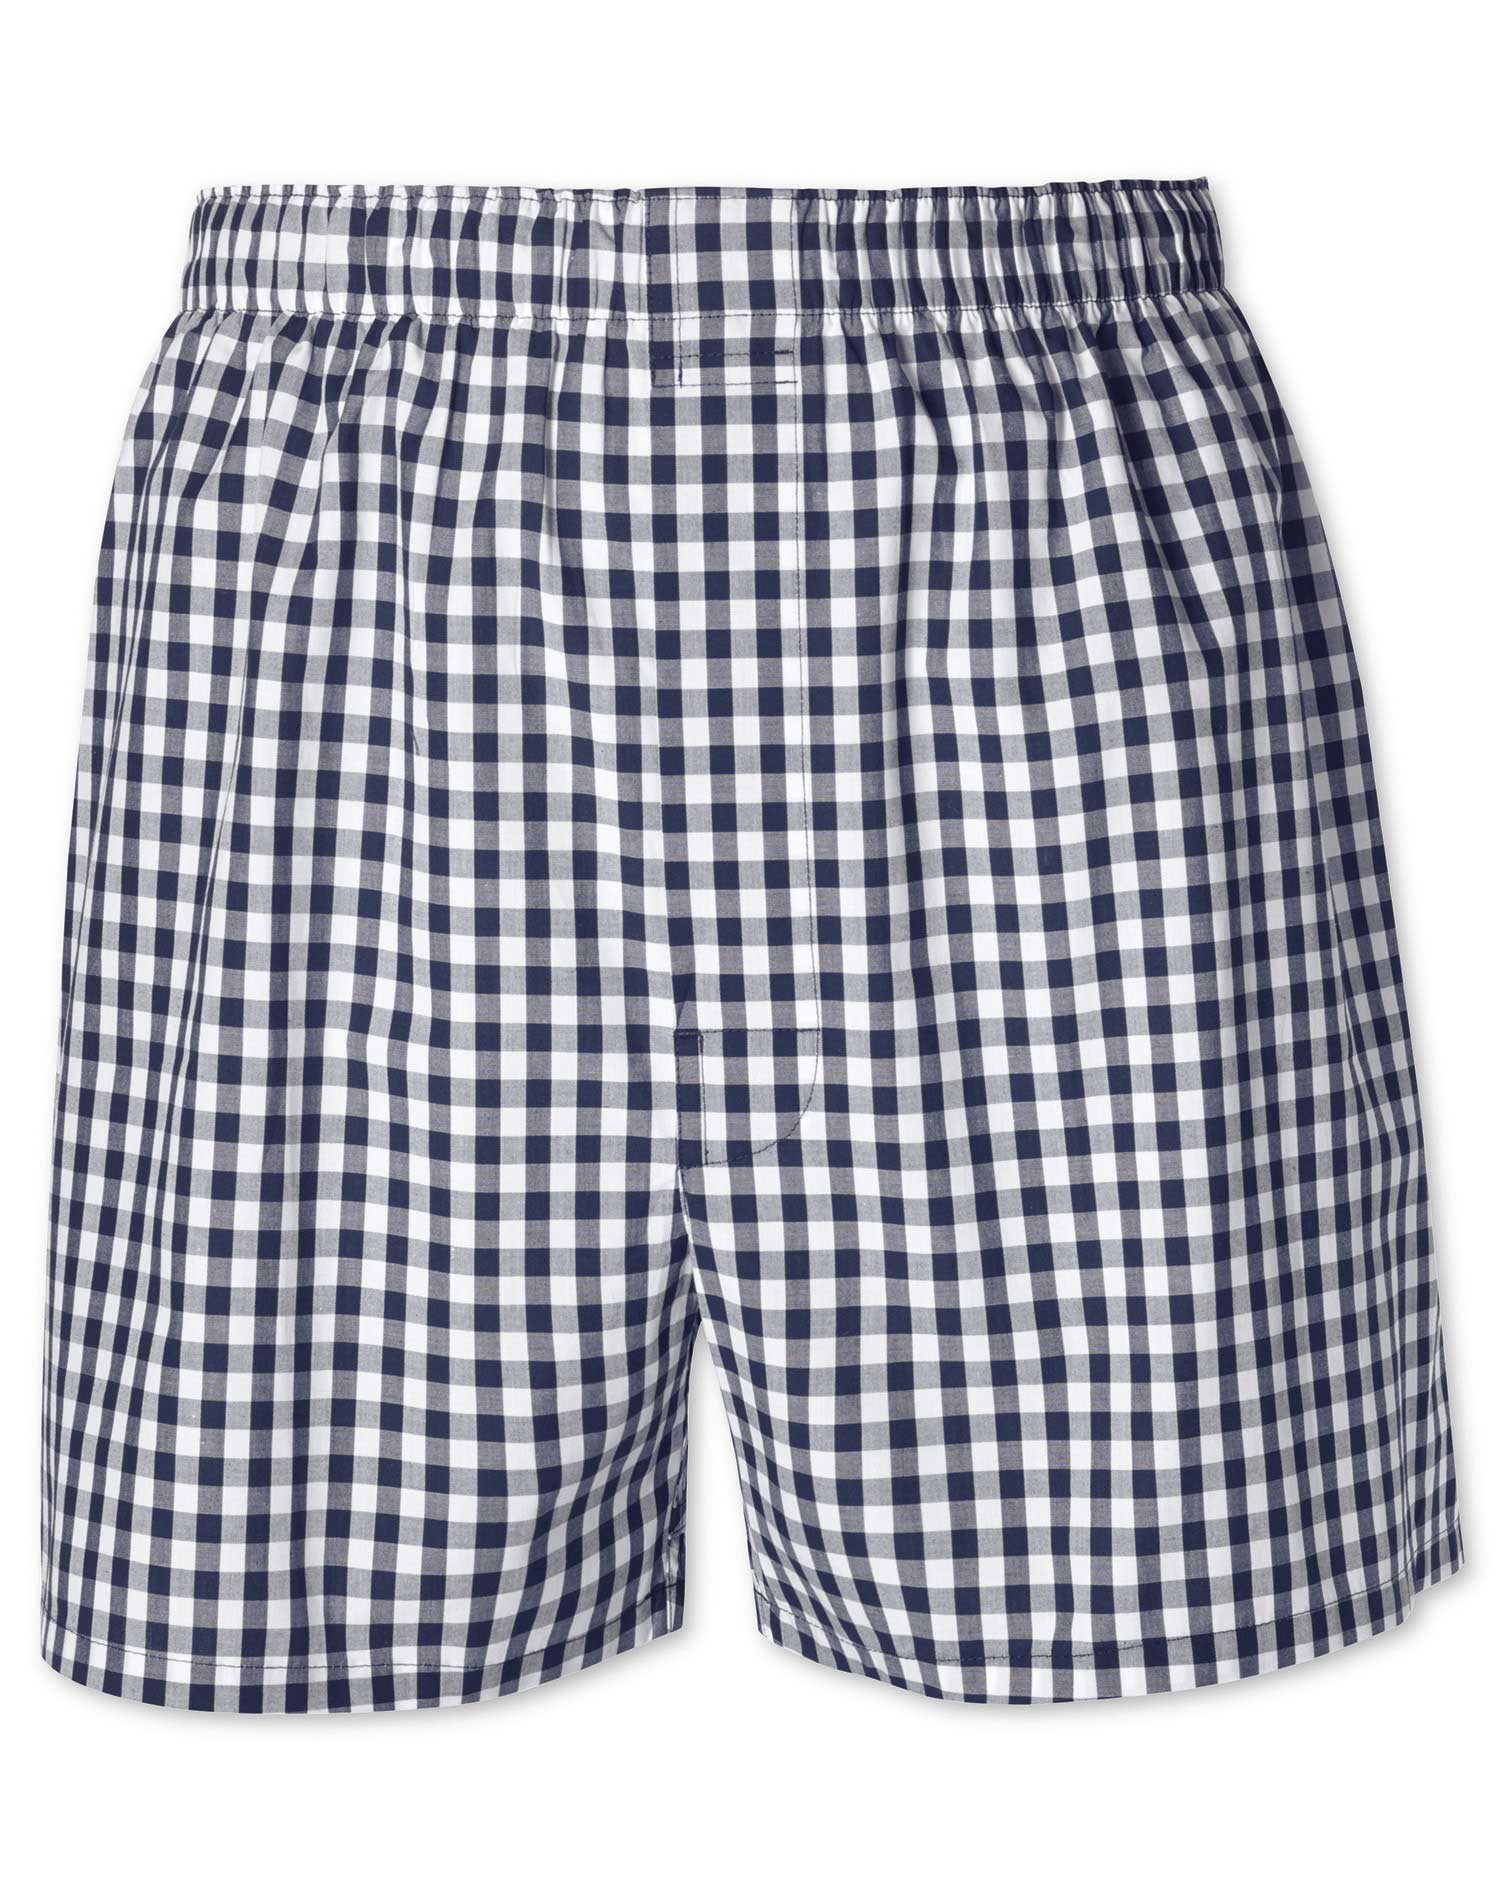 Navy Gingham Woven Boxers Size Small by Charles Tyrwhitt